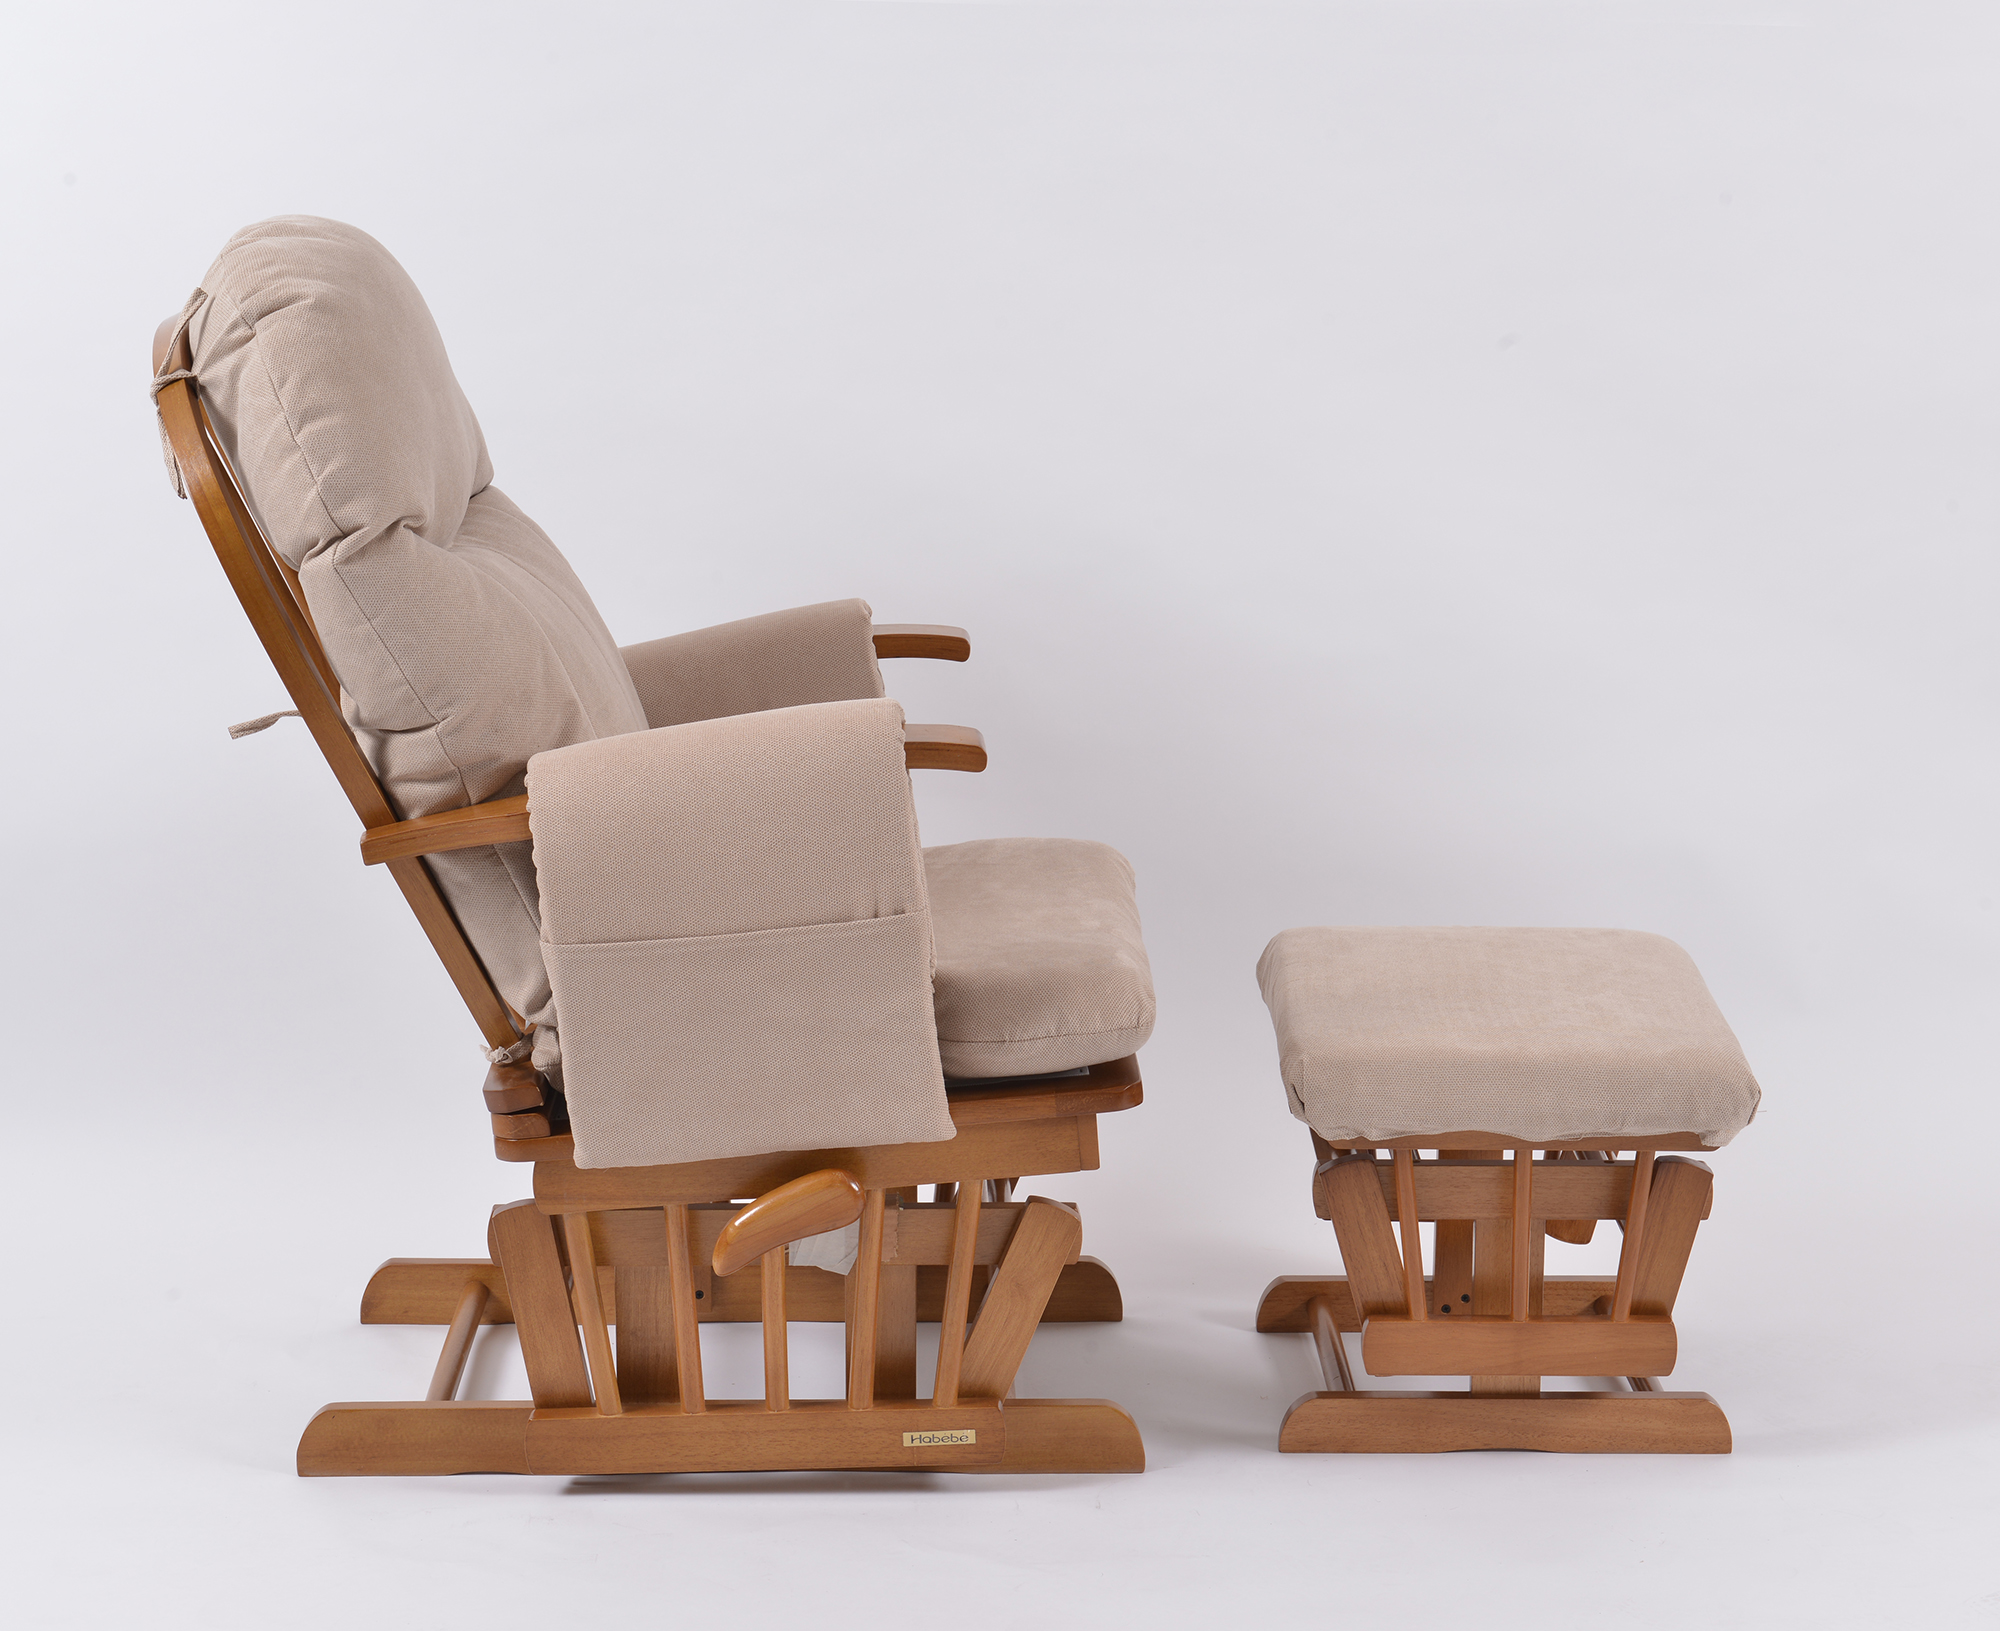 maternity rocking chair inglesina high recall habebe glider and stool  oak wood beige washable